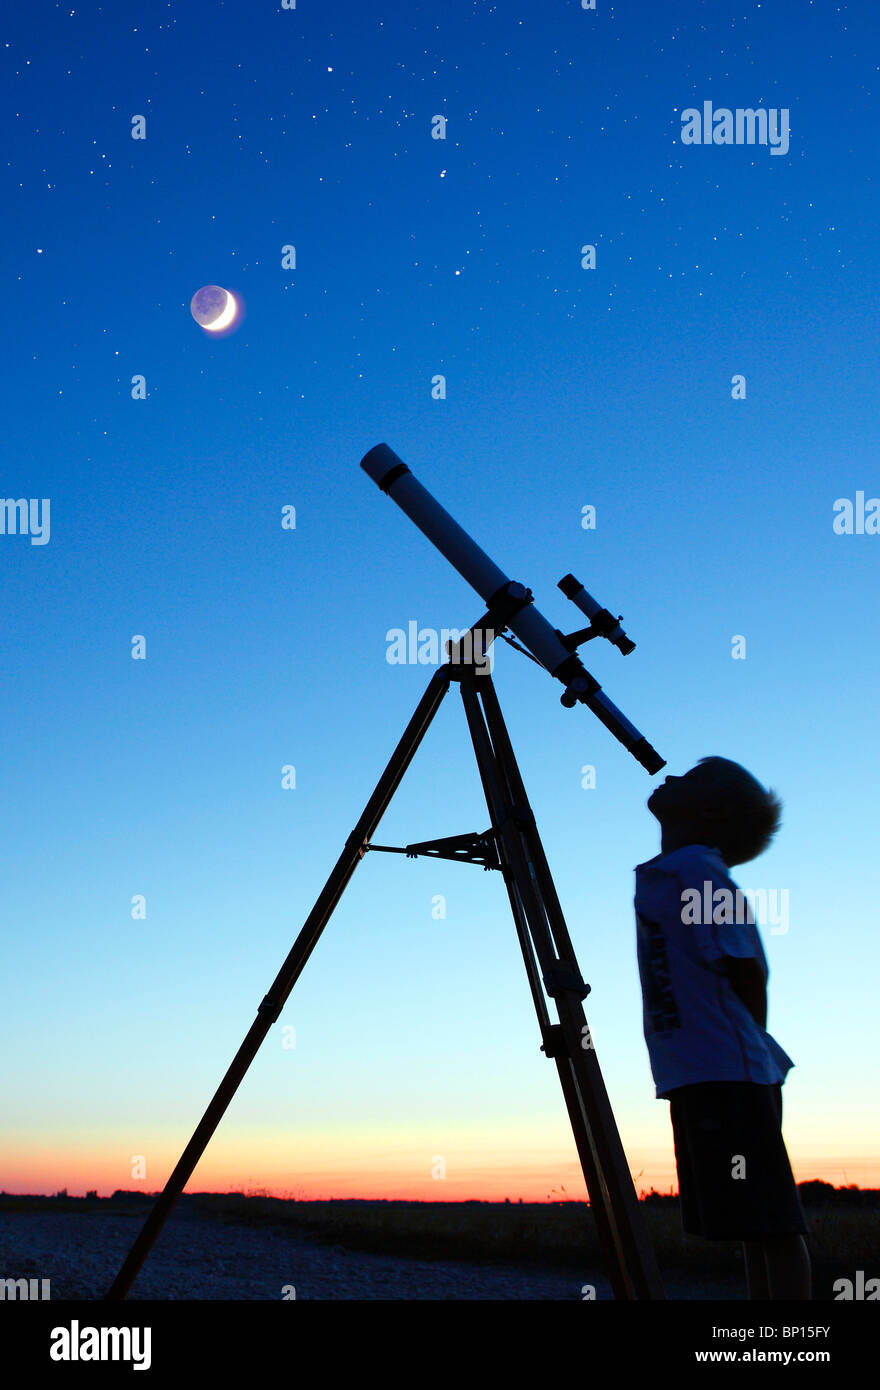 Little boy looking at moon with telescope - Stock Image